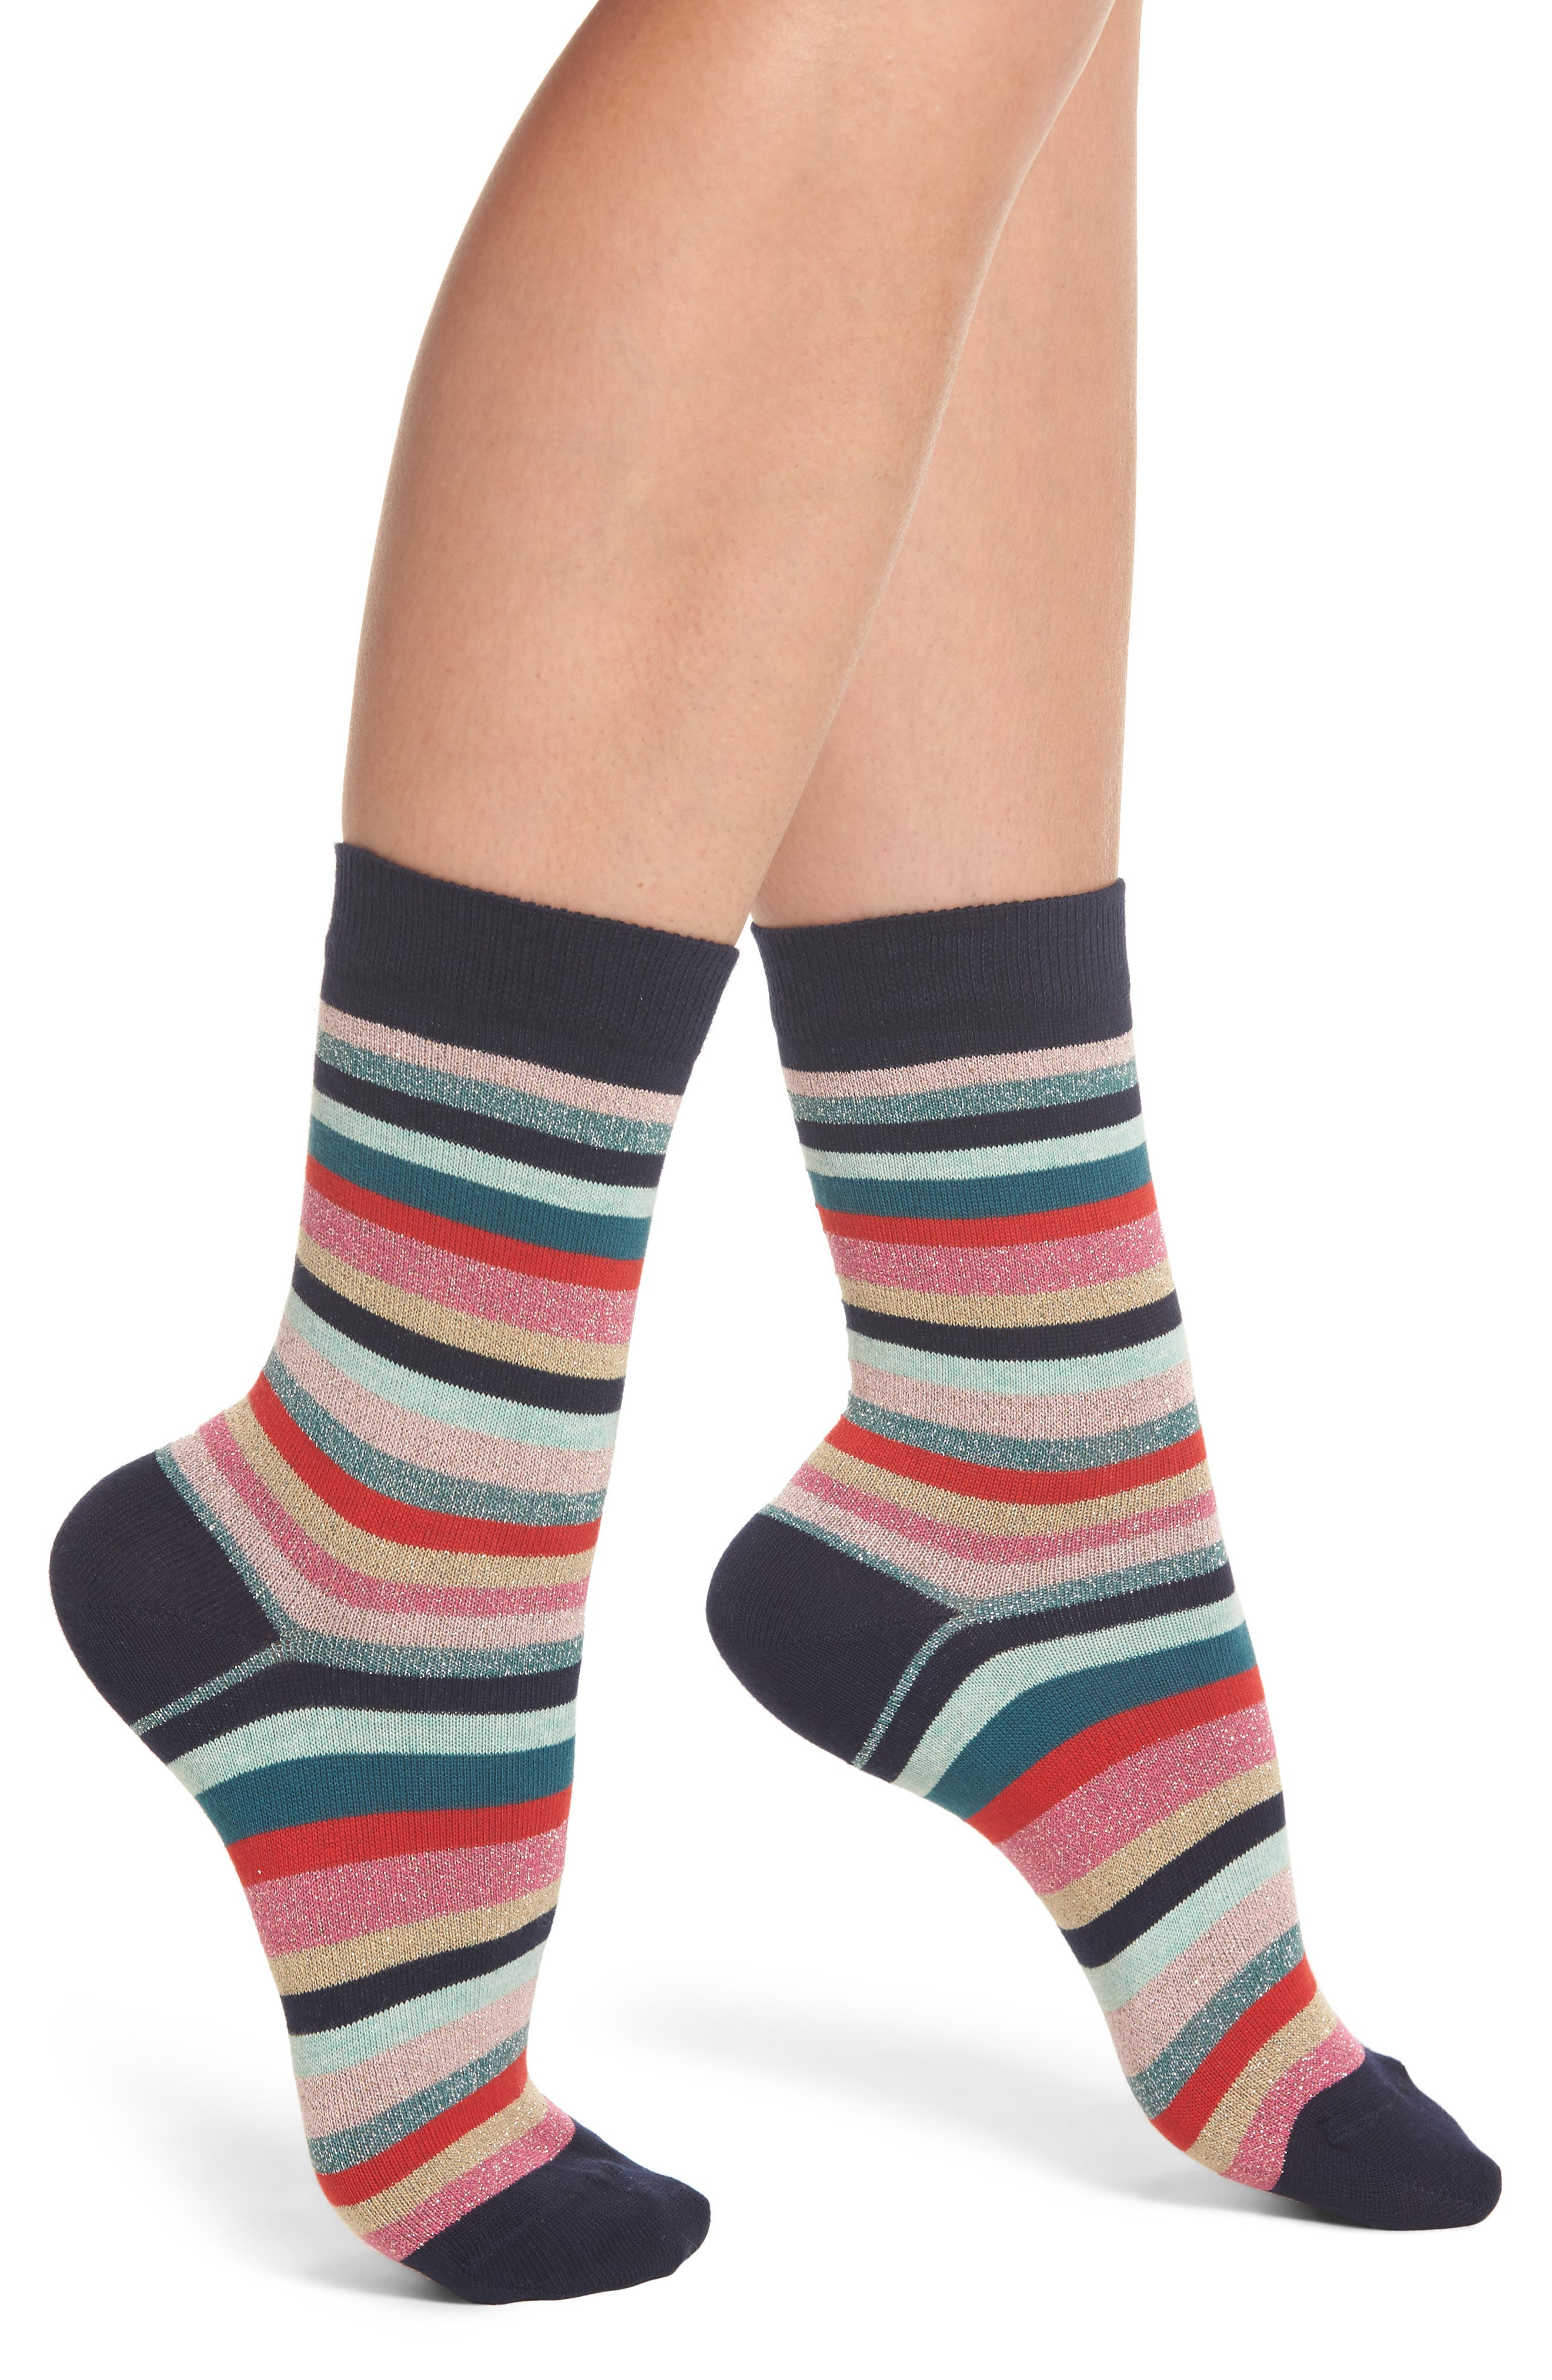 Paul Smith Clarissa Swirl Artist Stripe Crew Socks